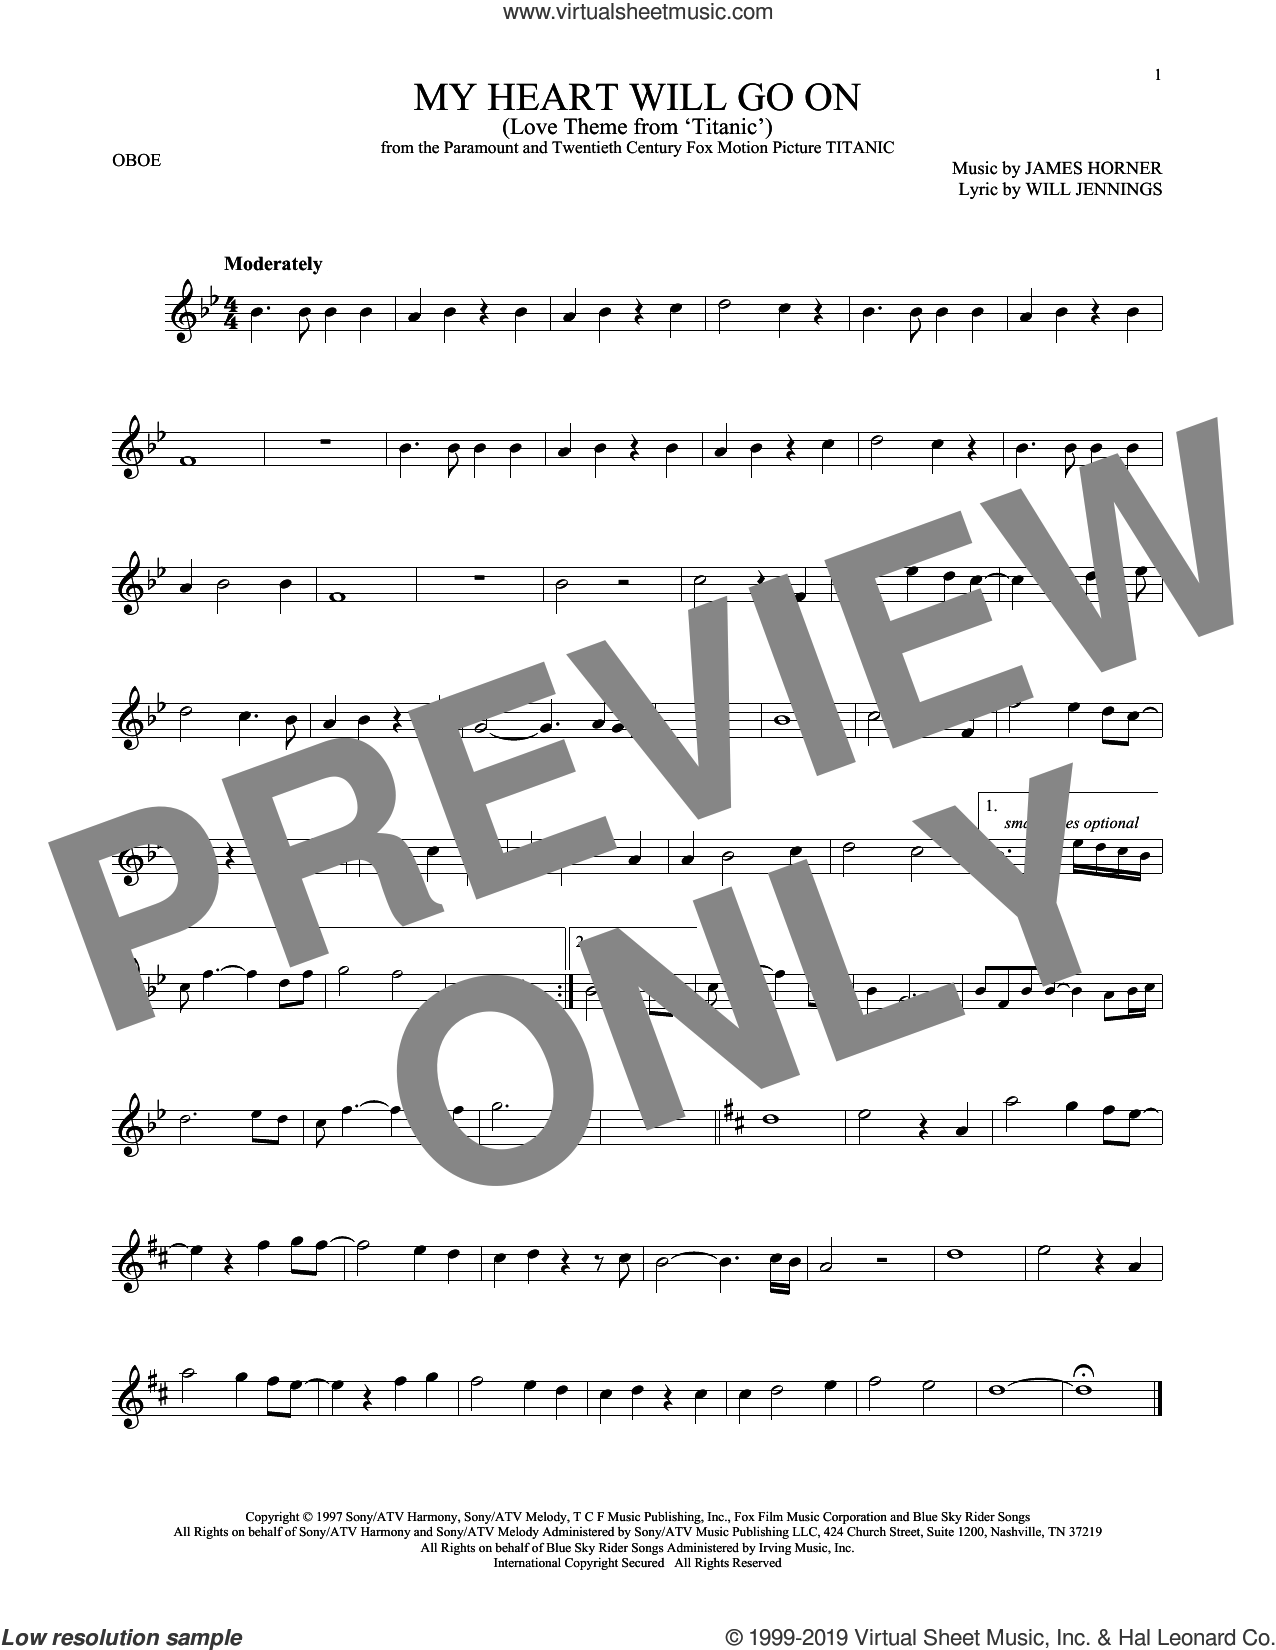 My Heart Will Go On (Love Theme from Titanic) sheet music for oboe solo by Celine Dion, James Horner and Will Jennings, intermediate skill level